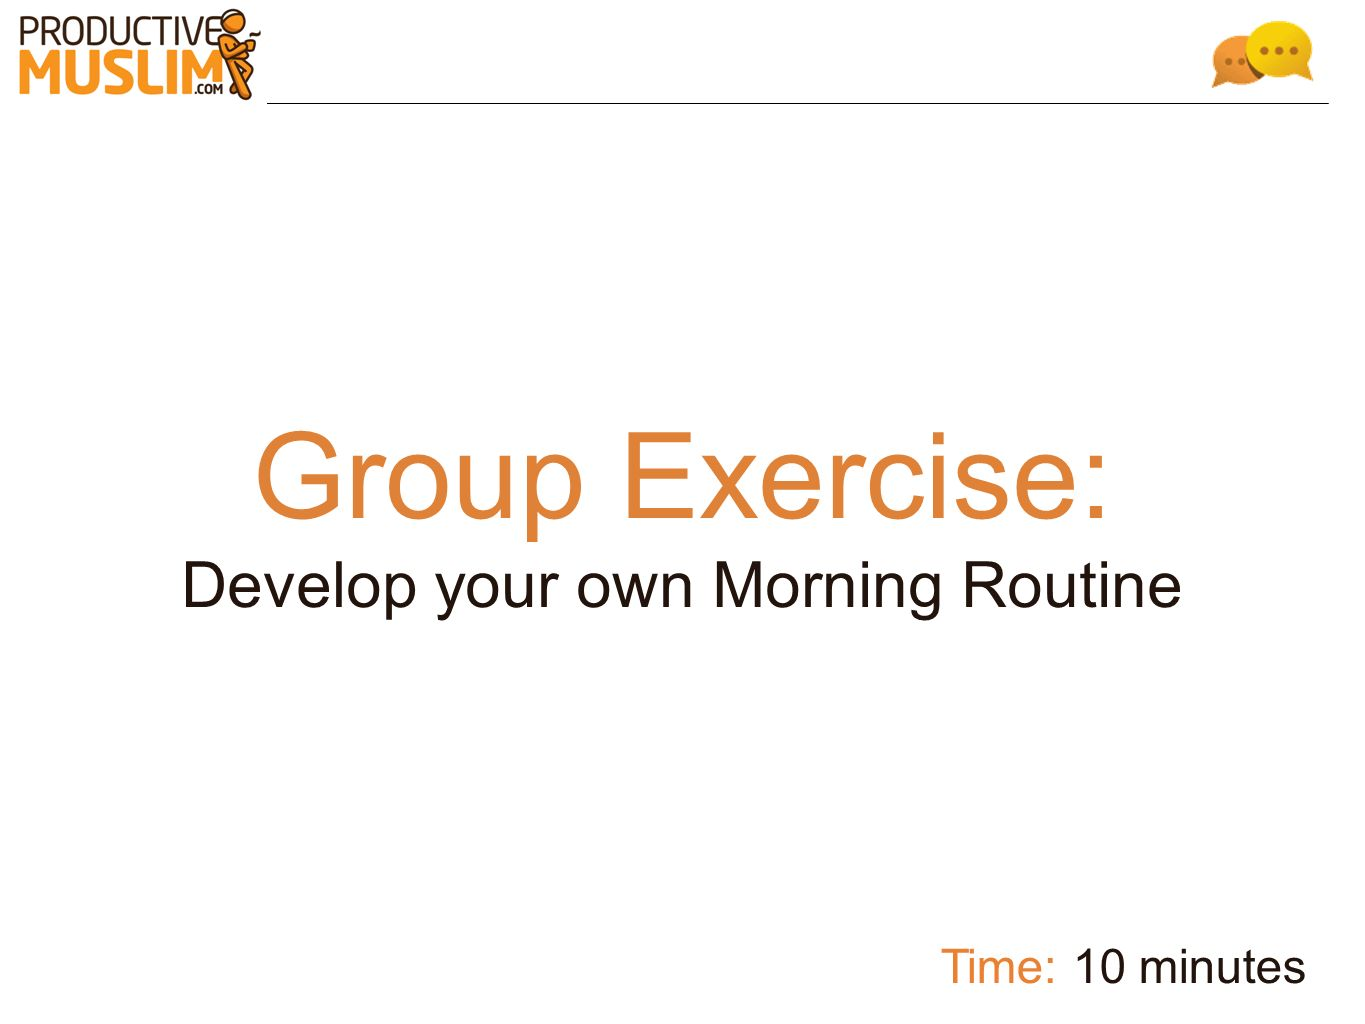 Develop your own Morning Routine